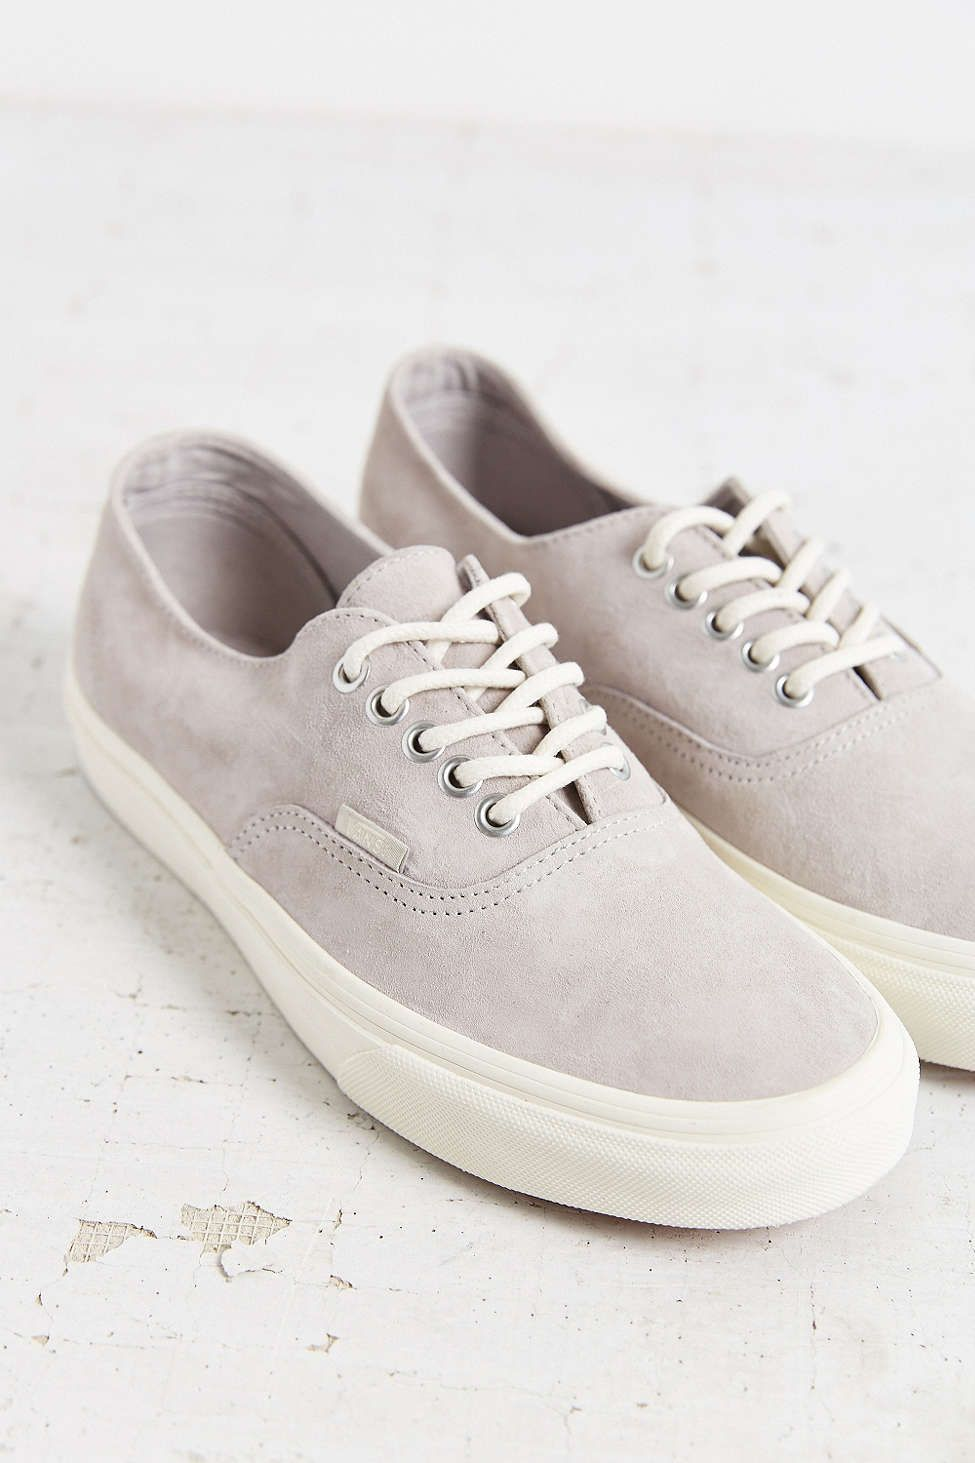 dbb0f069c0 Vans Scotchgard Authentic Decon Sneaker - Urban Outfitters